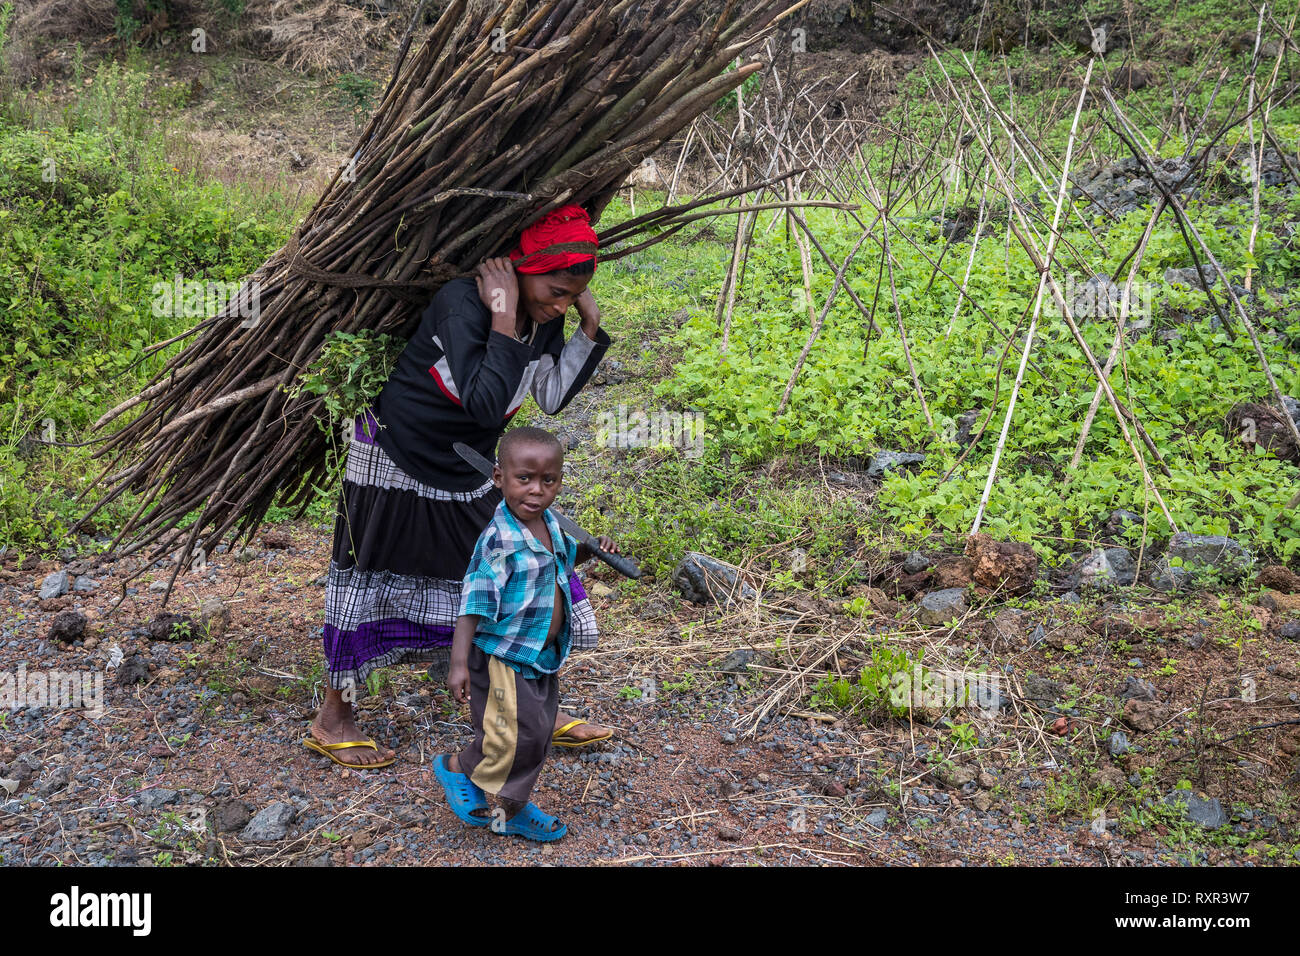 A woman loaded down with wood in Goma, Democratic Republic of Congo - Stock Image